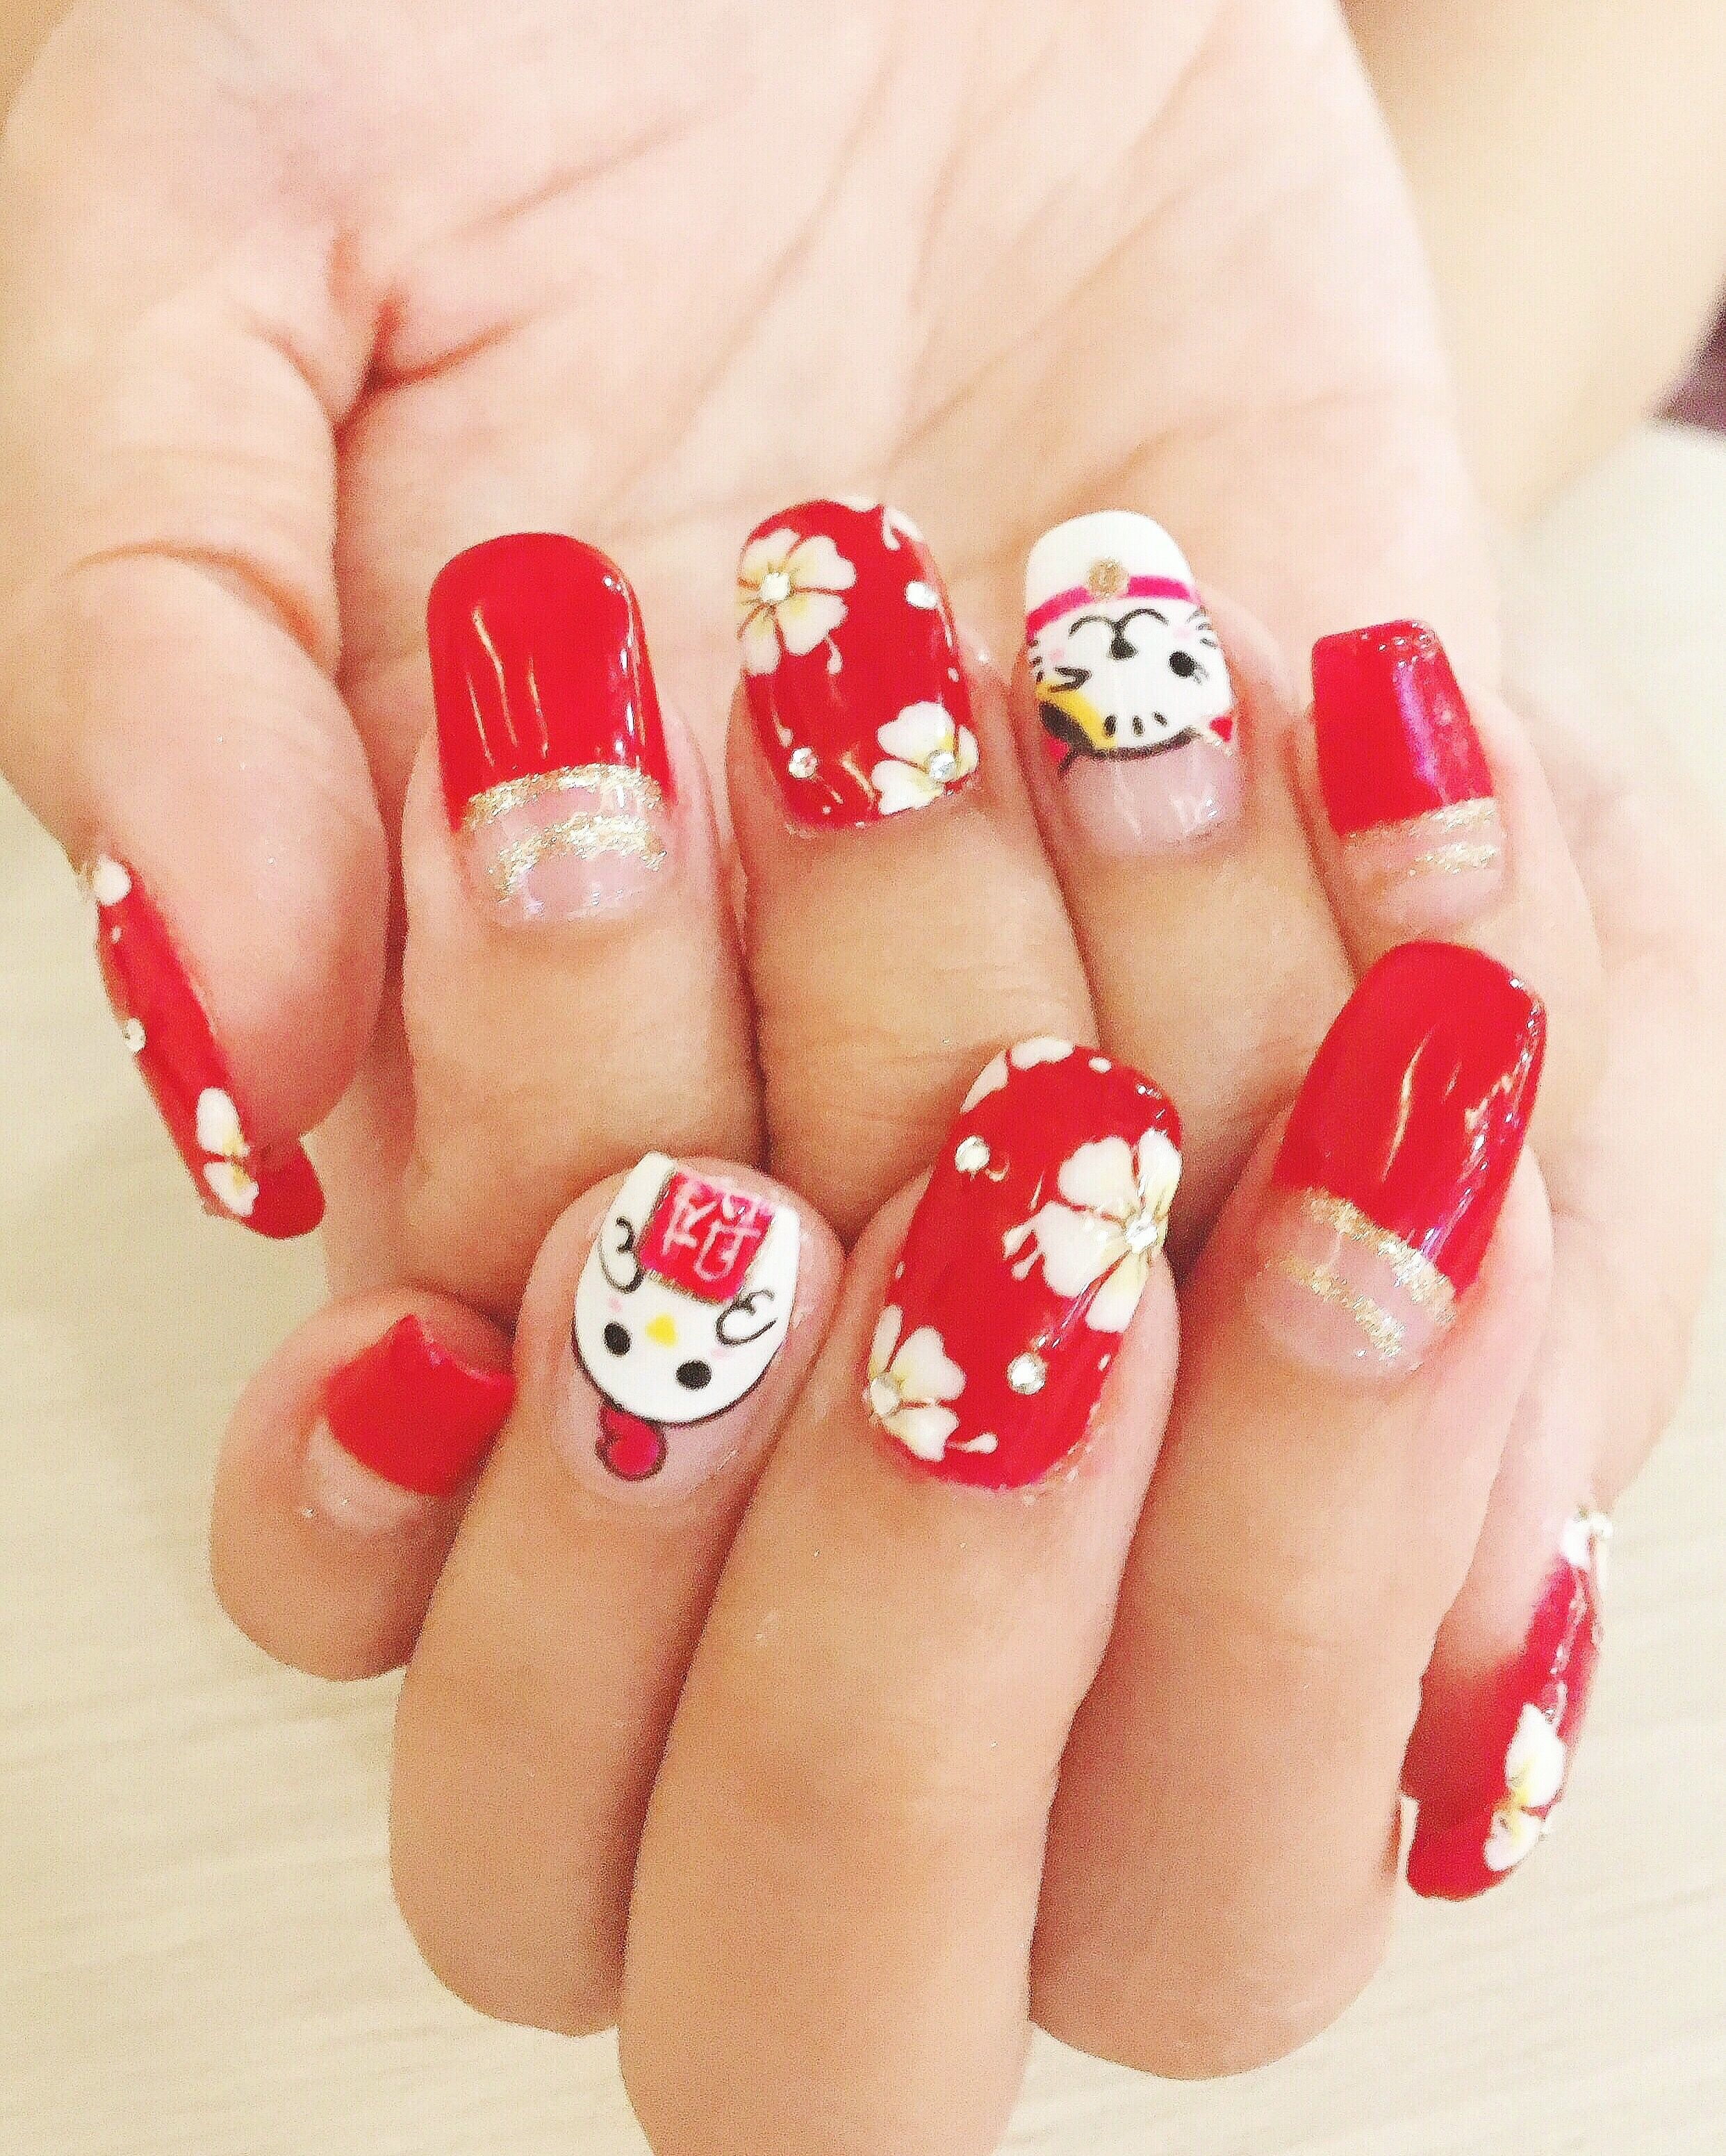 Rooster Chinese new year gelish manicure nail art with